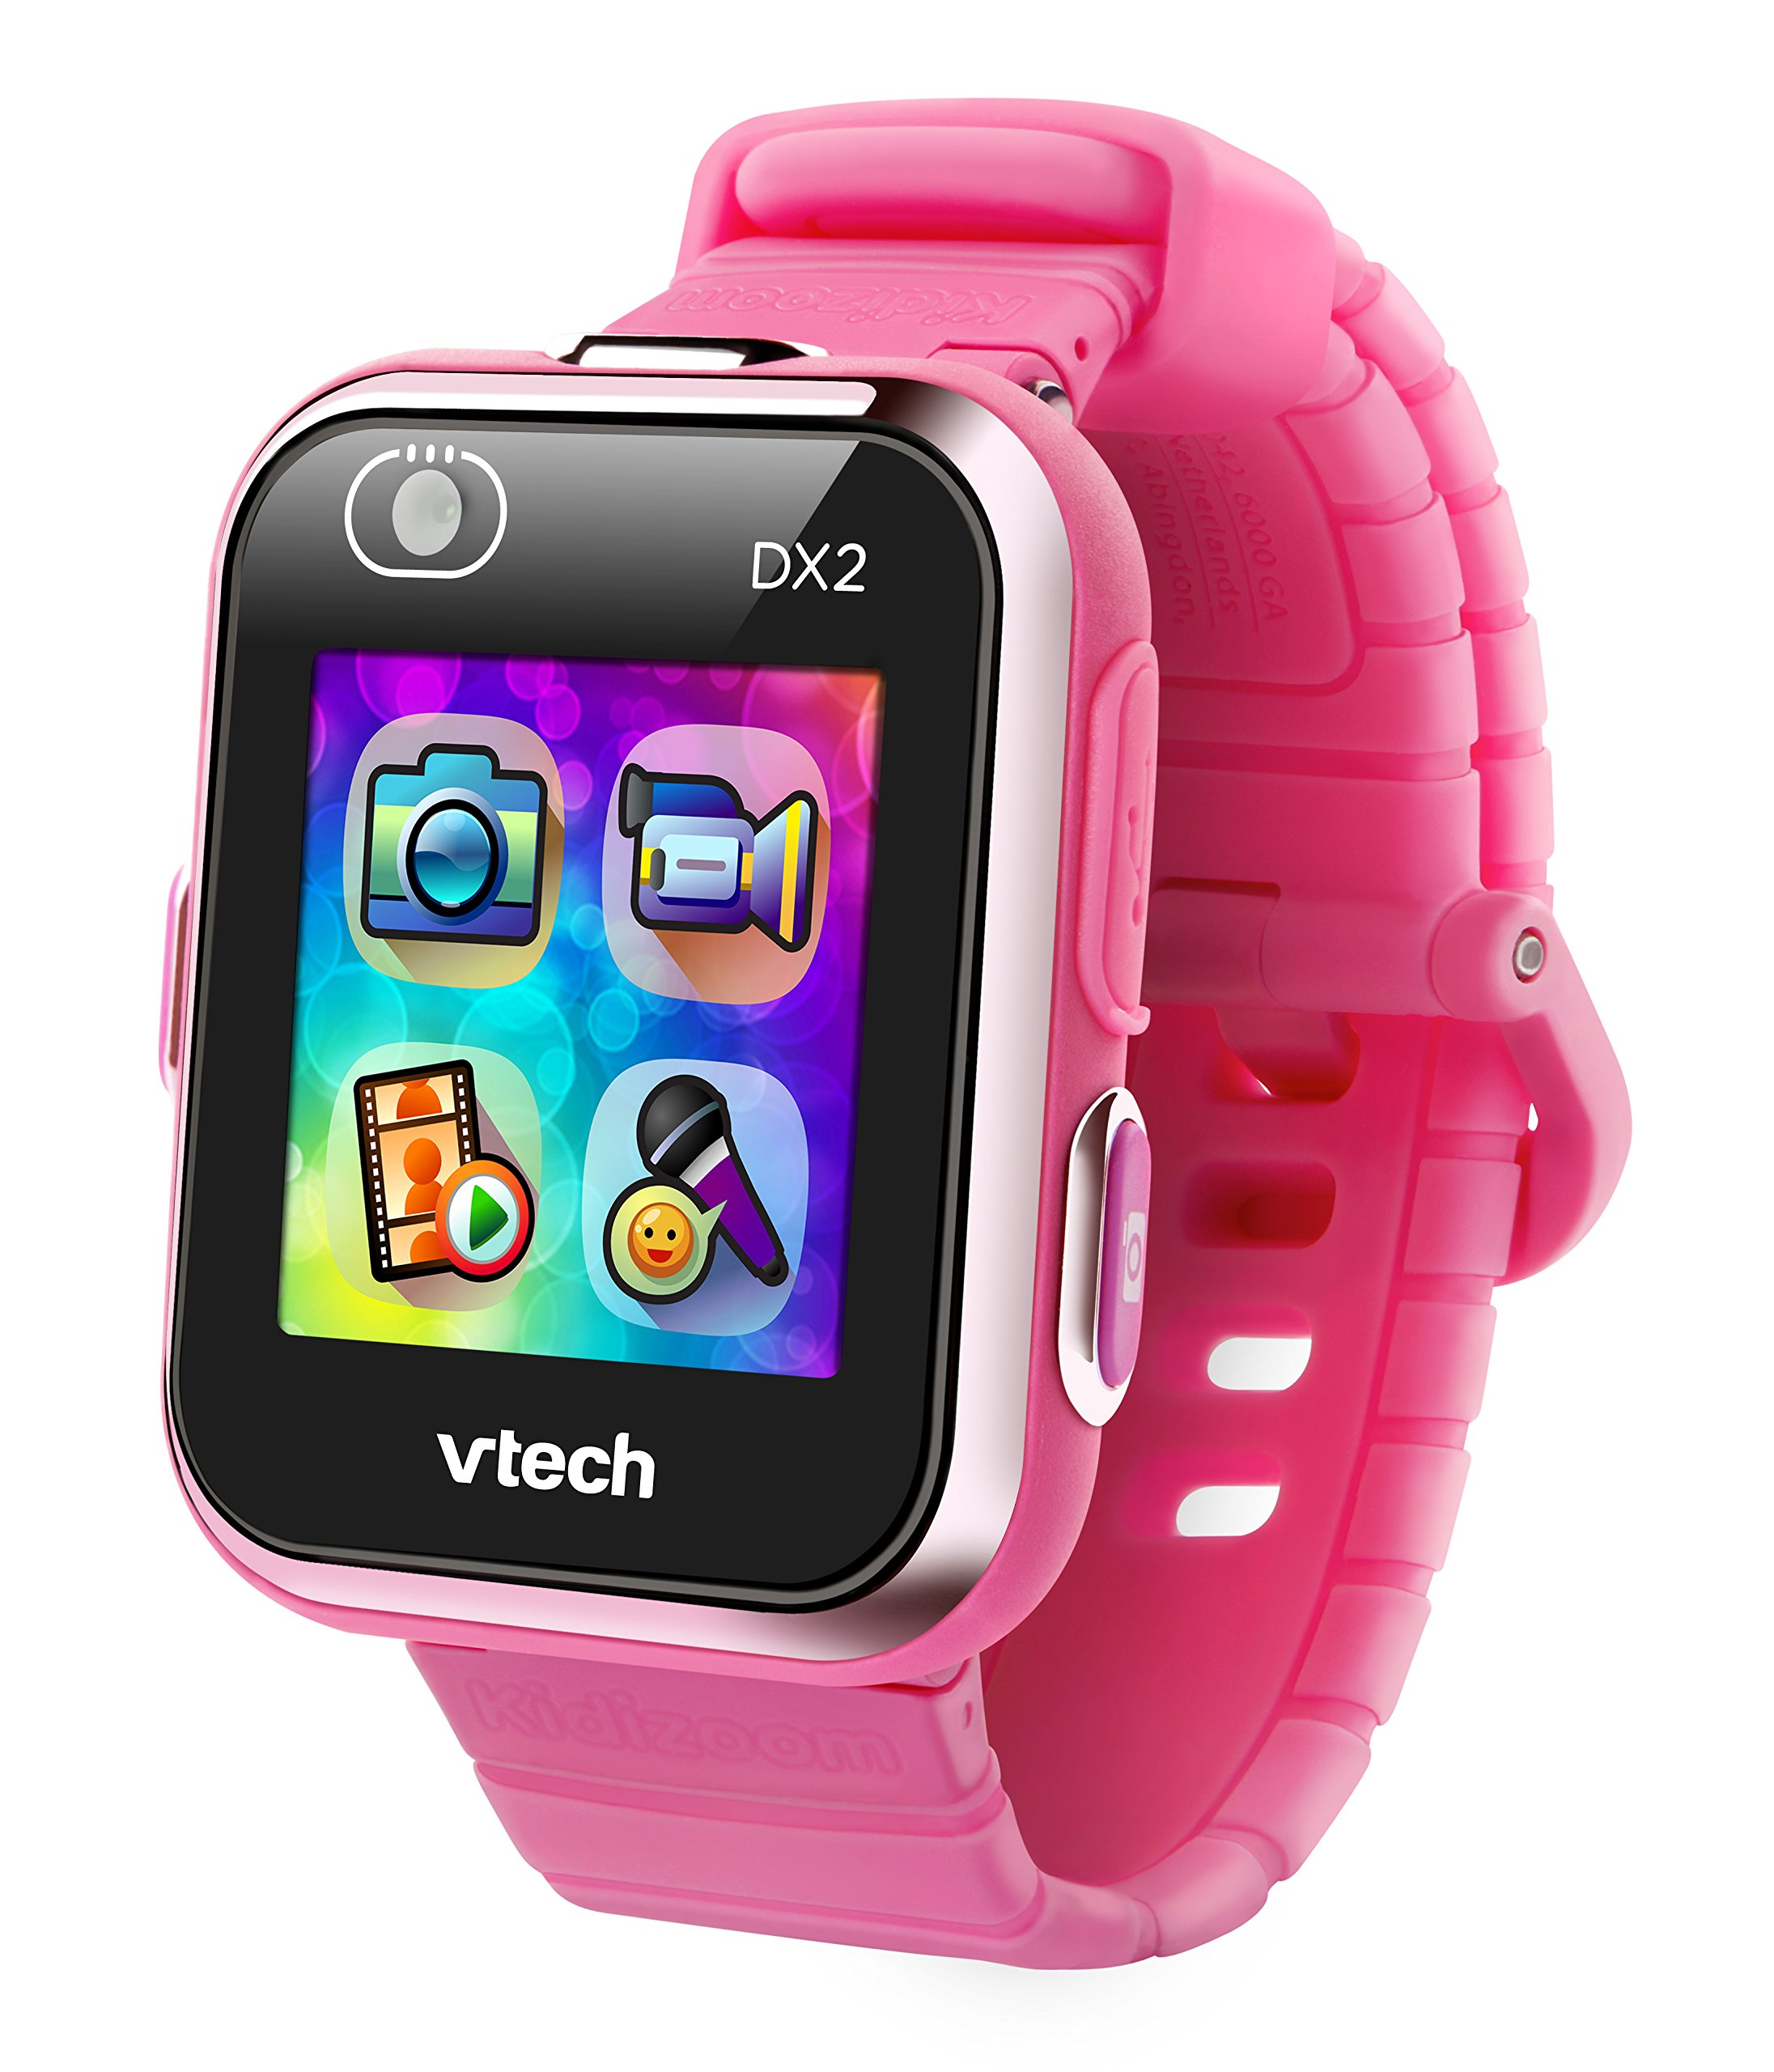 VTech Kidizoom Smart Watch DX2 - Reloj inteligente para niños, color rosa, versión Alemana (80-193854) 2